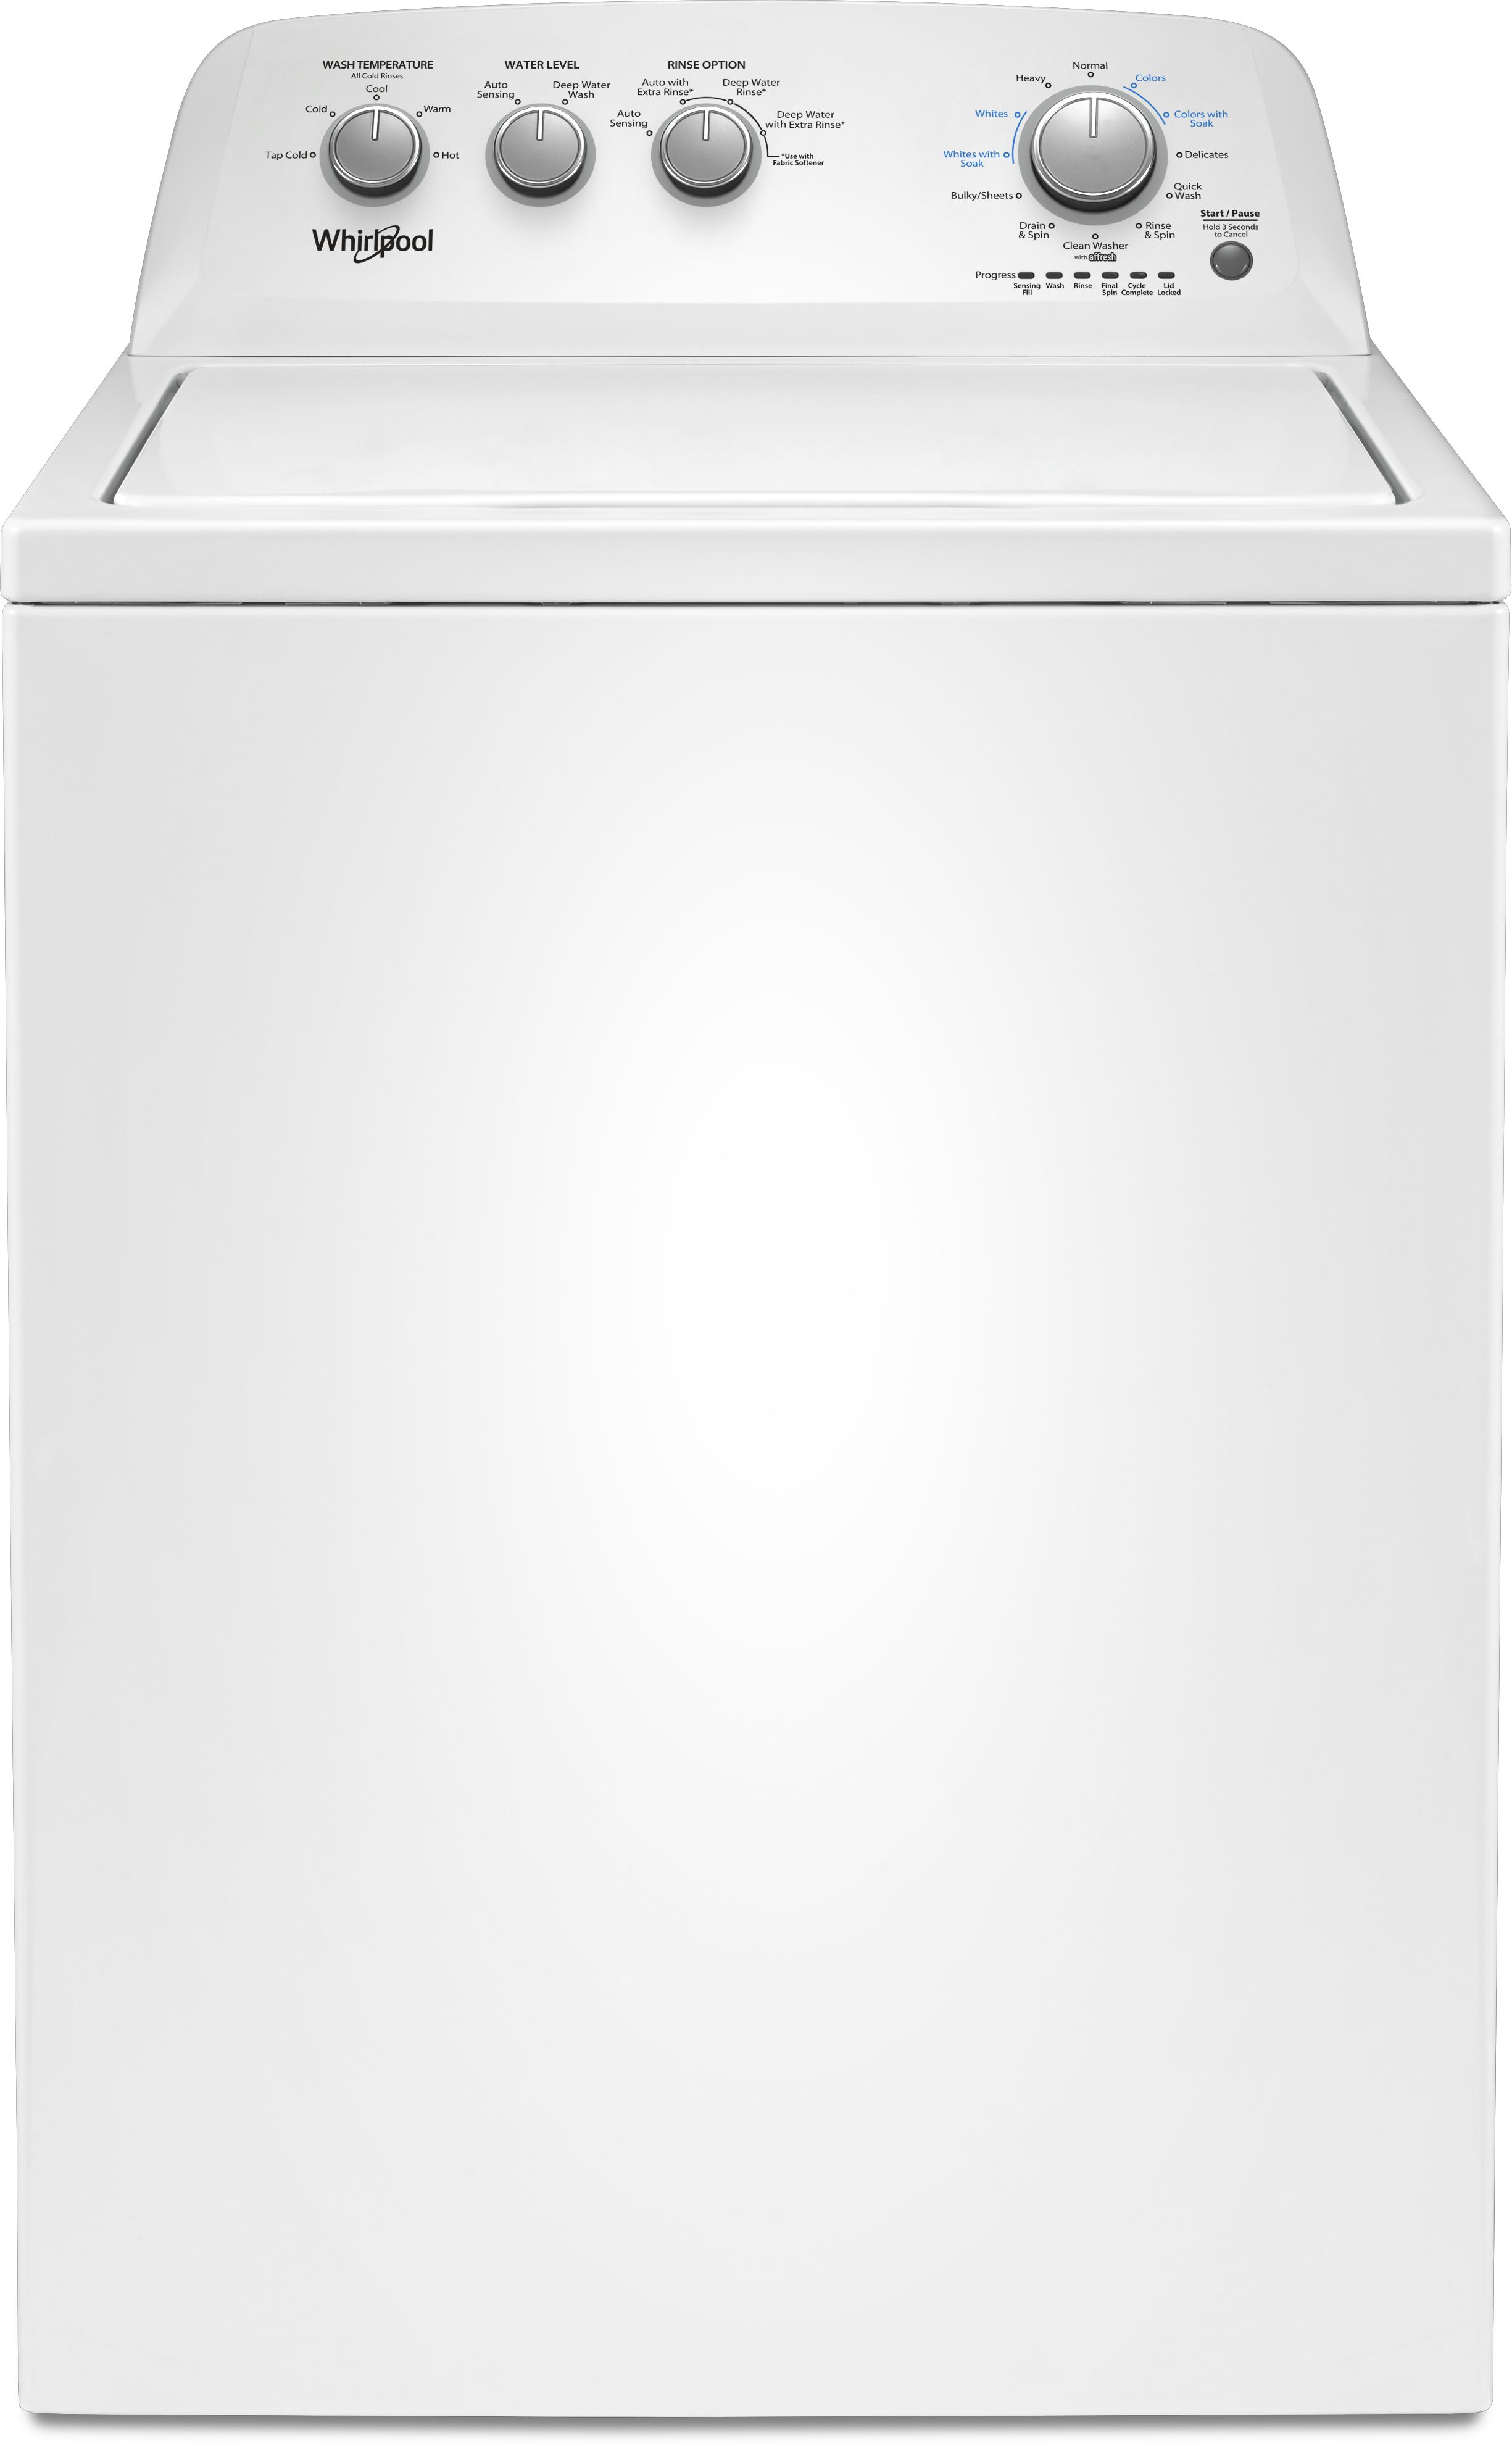 Whirlpool Top Load Washer White Wtw4855hw